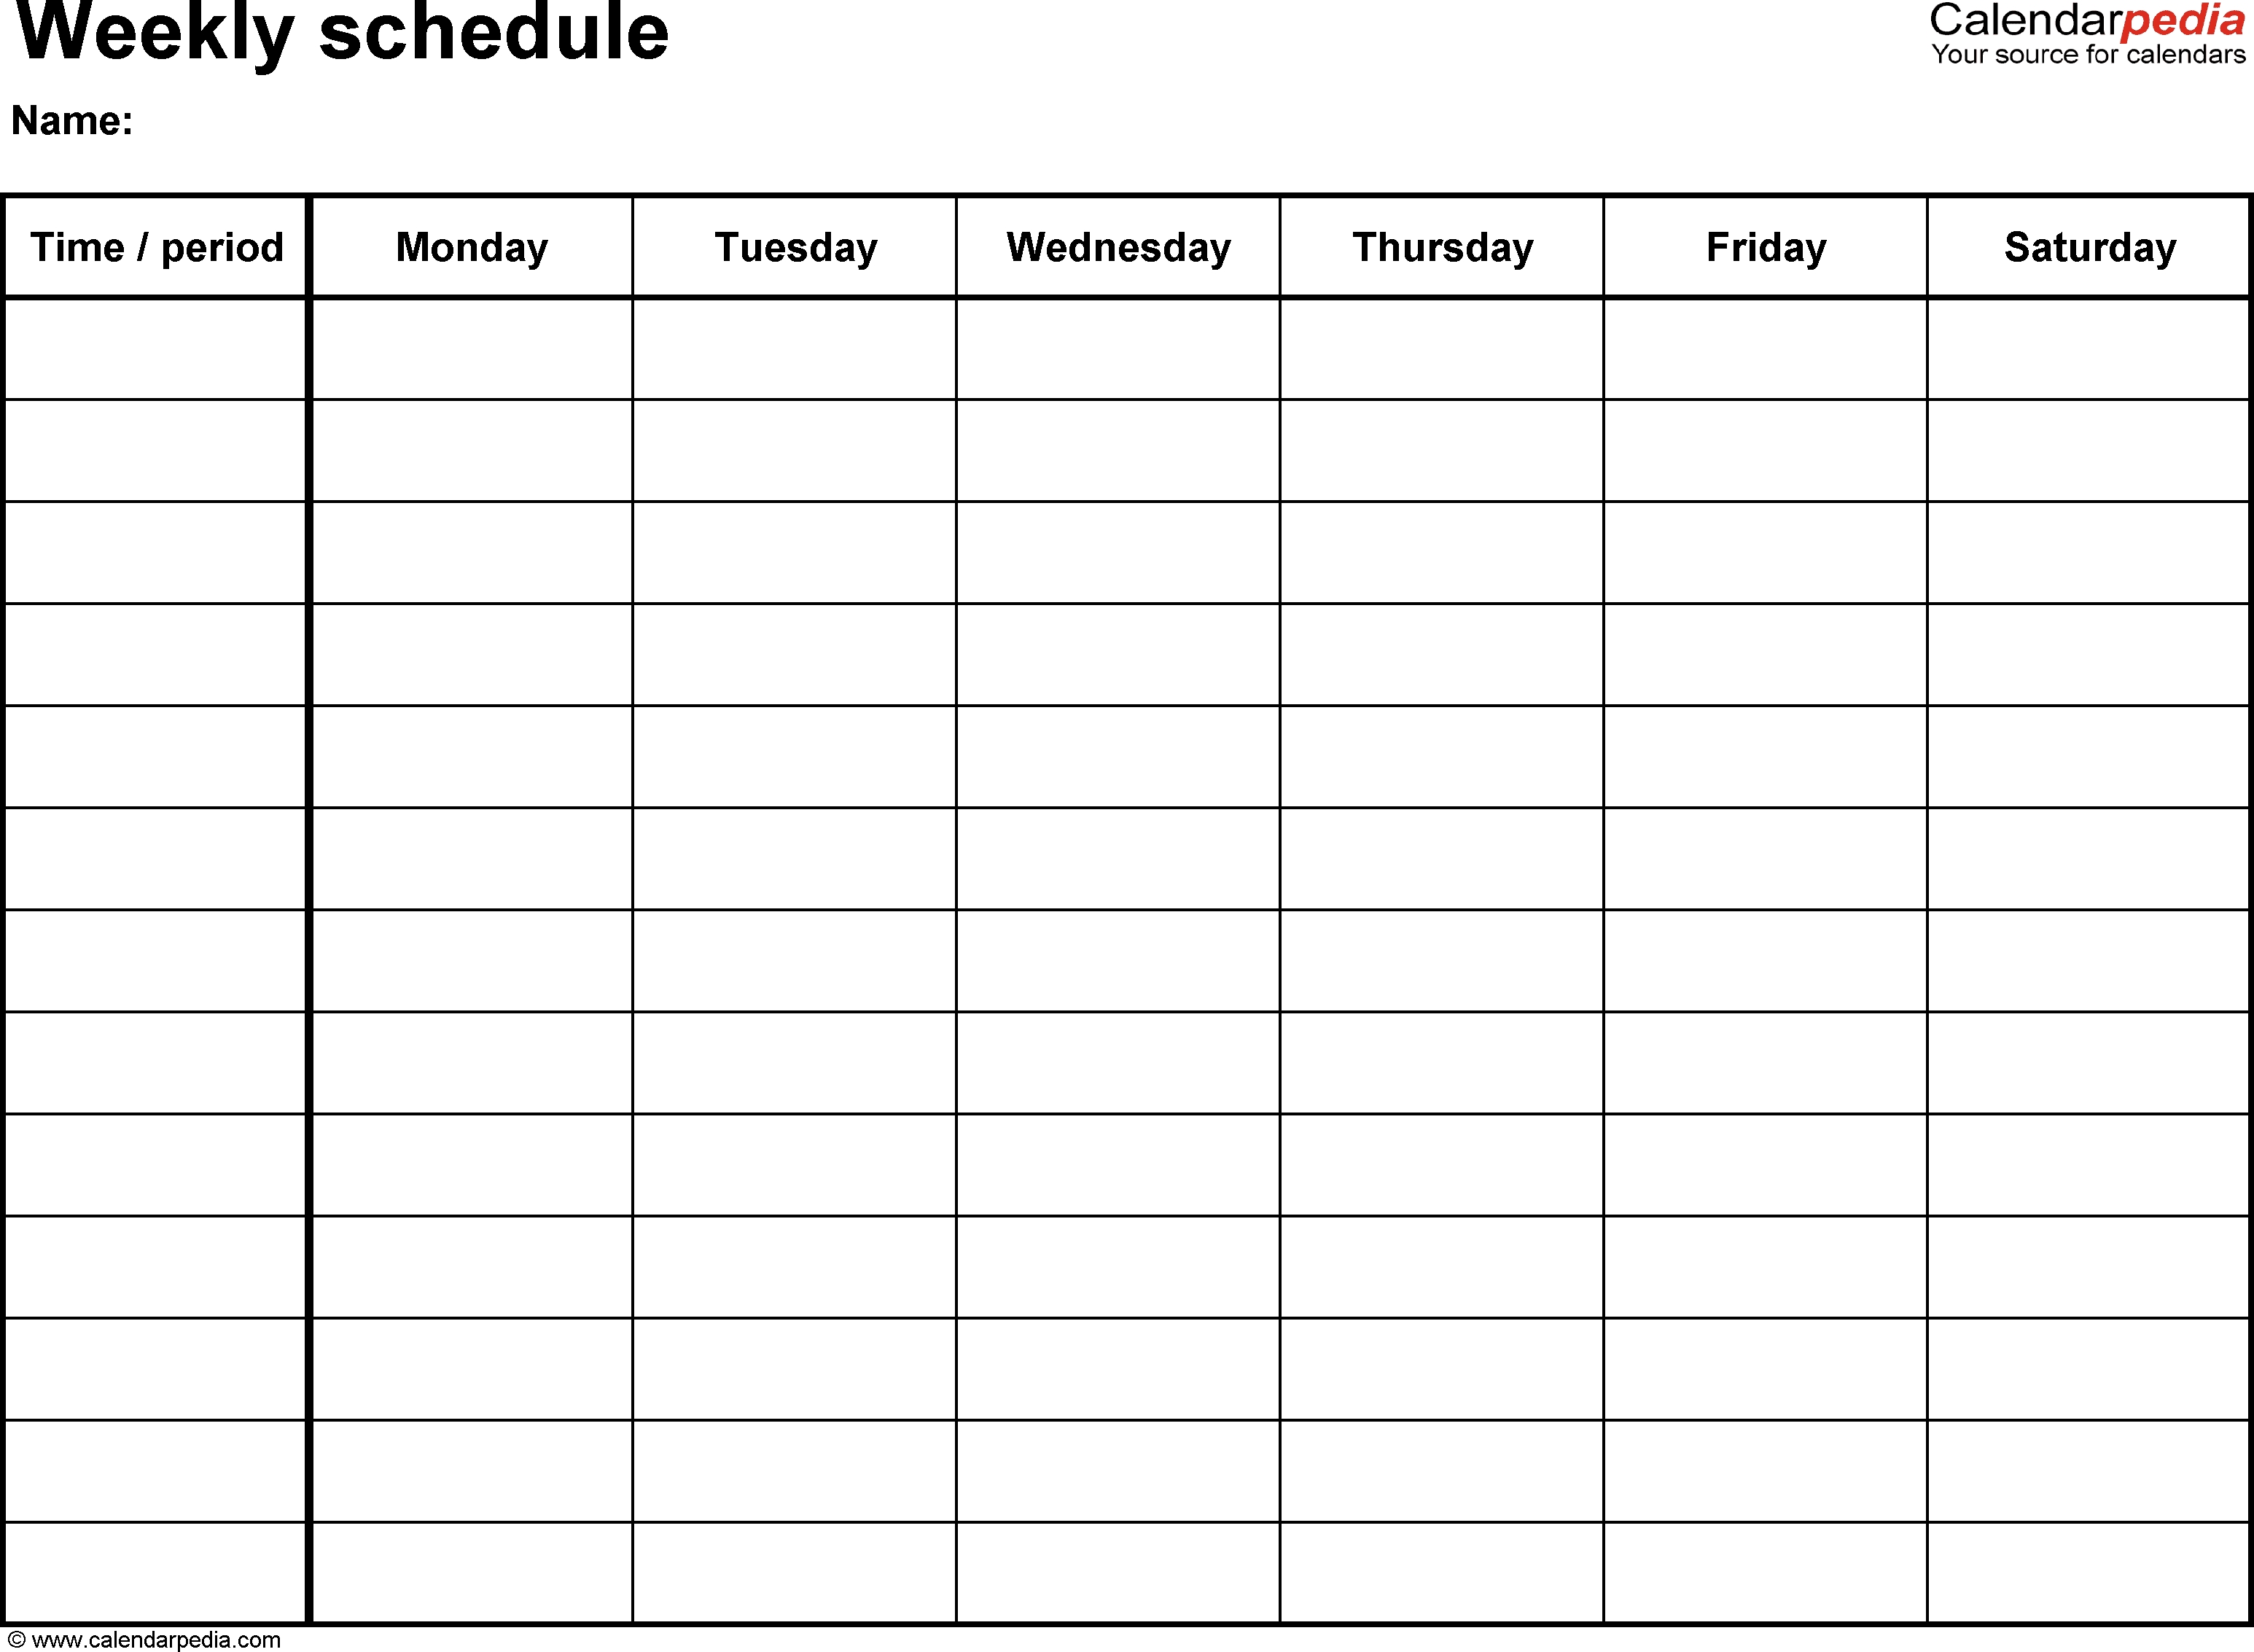 Free Weekly Schedule Templates For Excel - 18 Templates-Calendar Lesson Plan Template